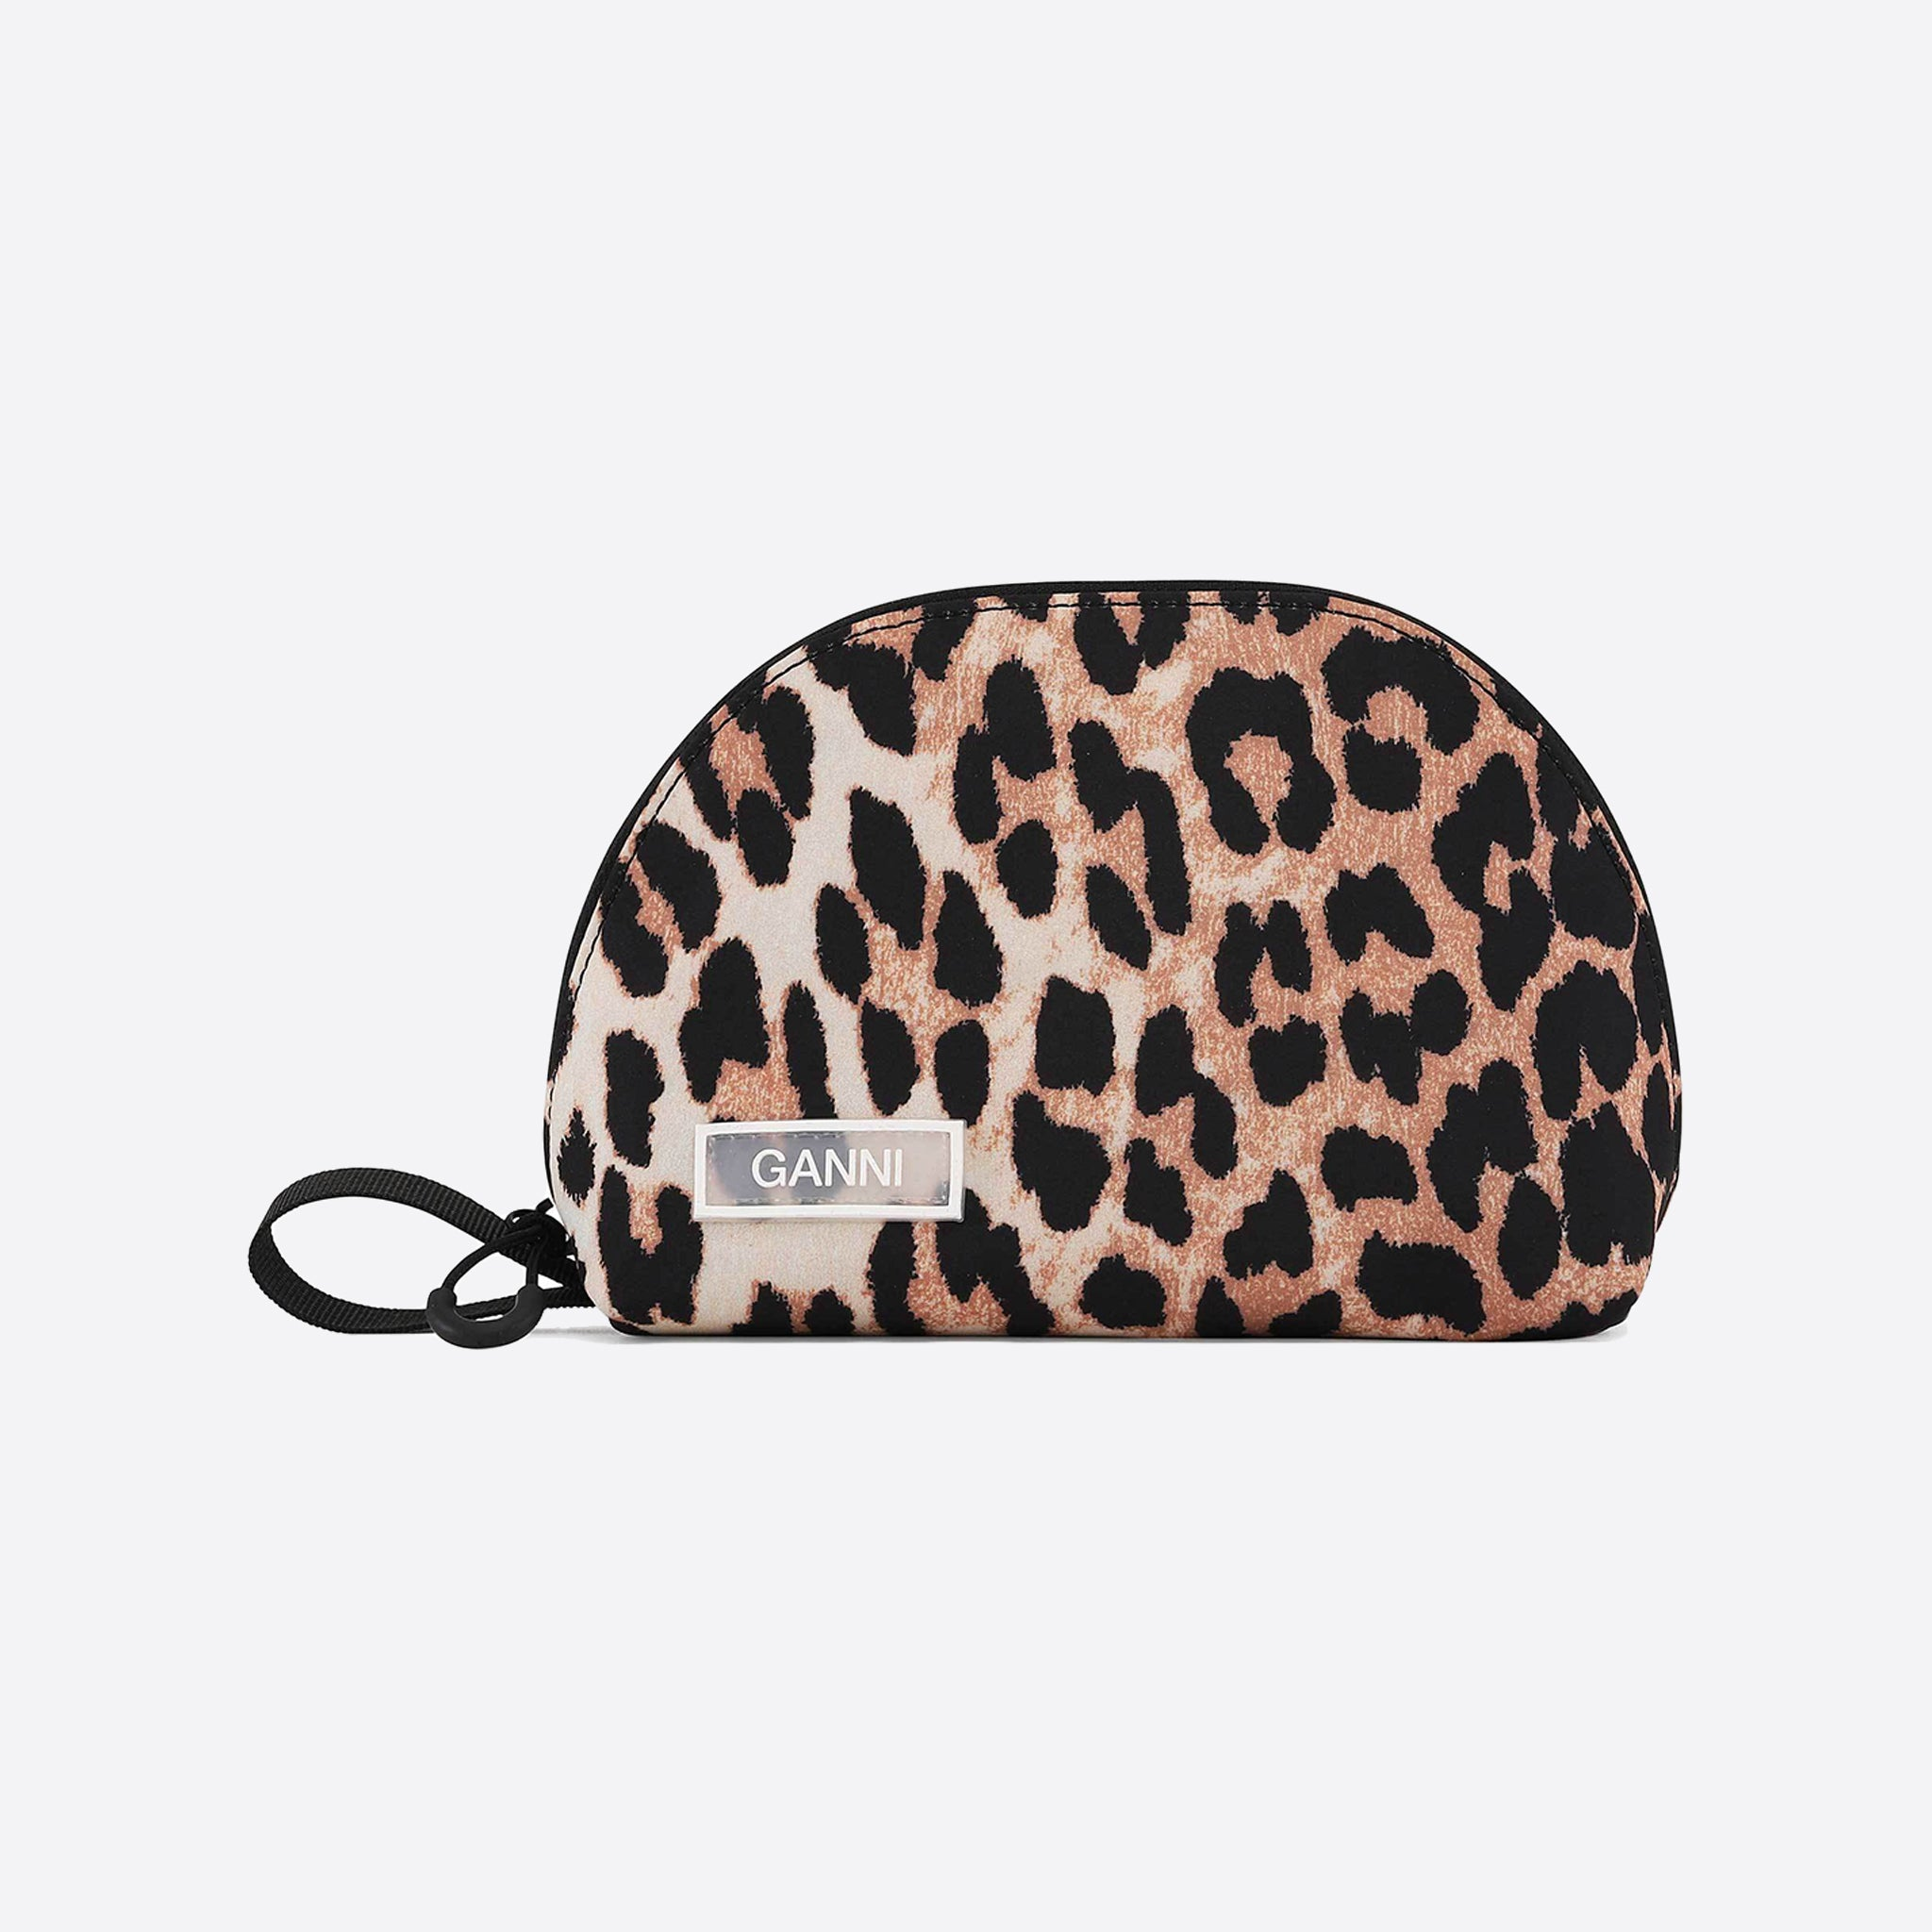 Ganni Tech Fabric Toiletry Bag in Leopard